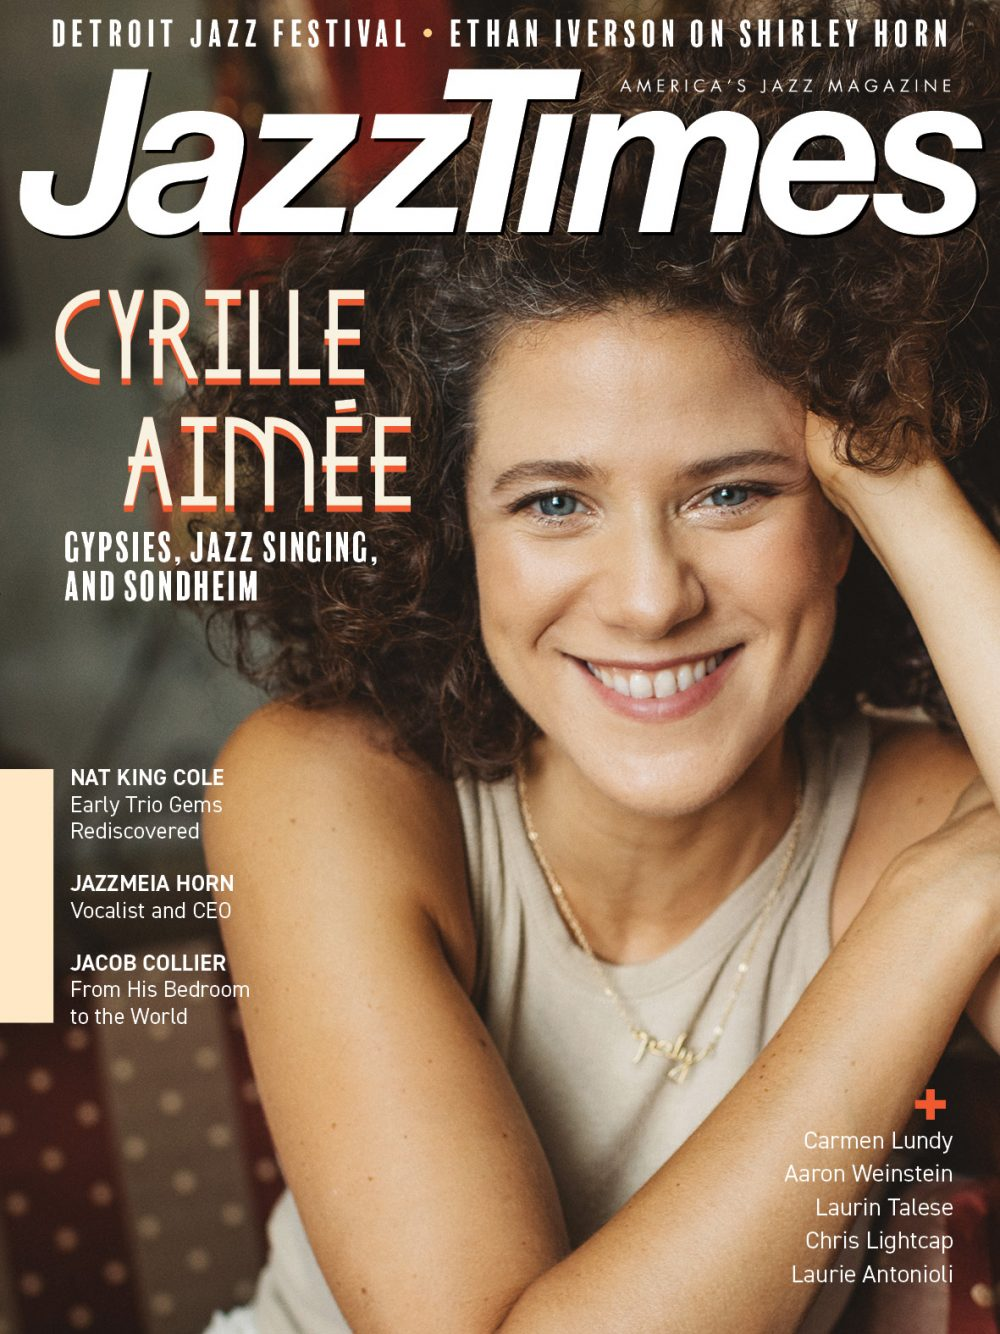 Jazz times cover art